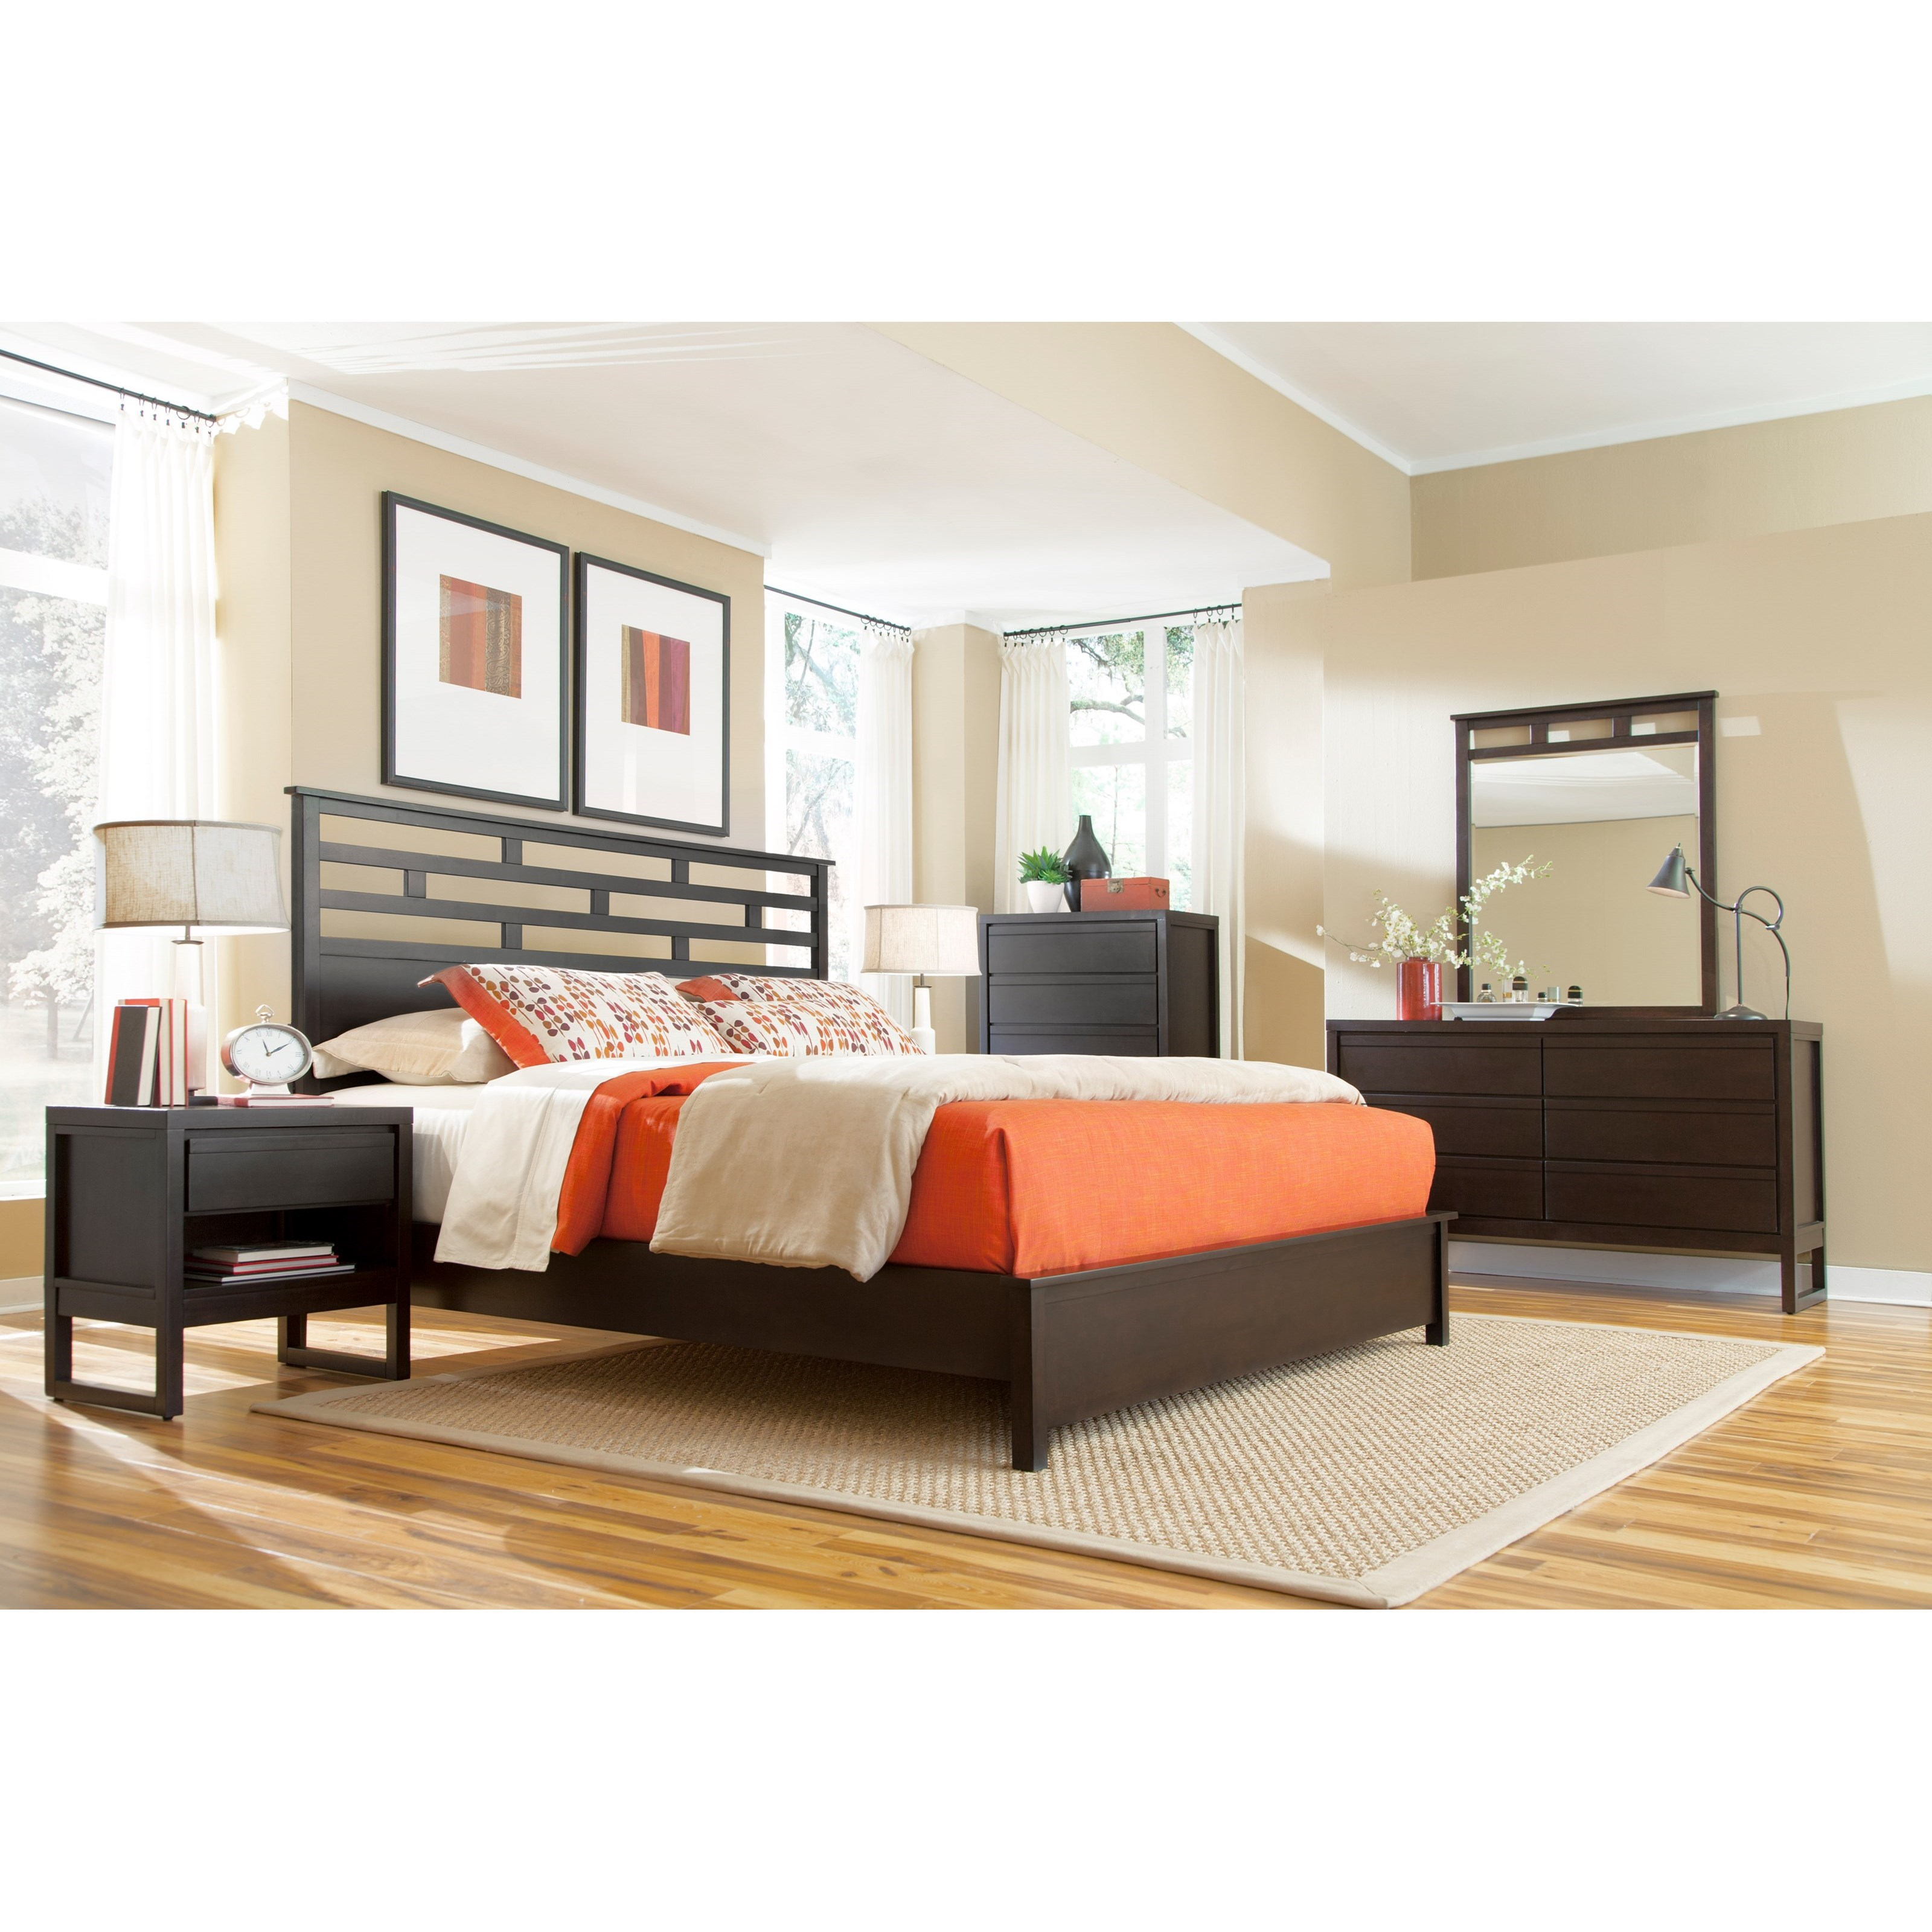 Athena 7PC Queen Bedroom Group by Progressive Furniture at Value City Furniture